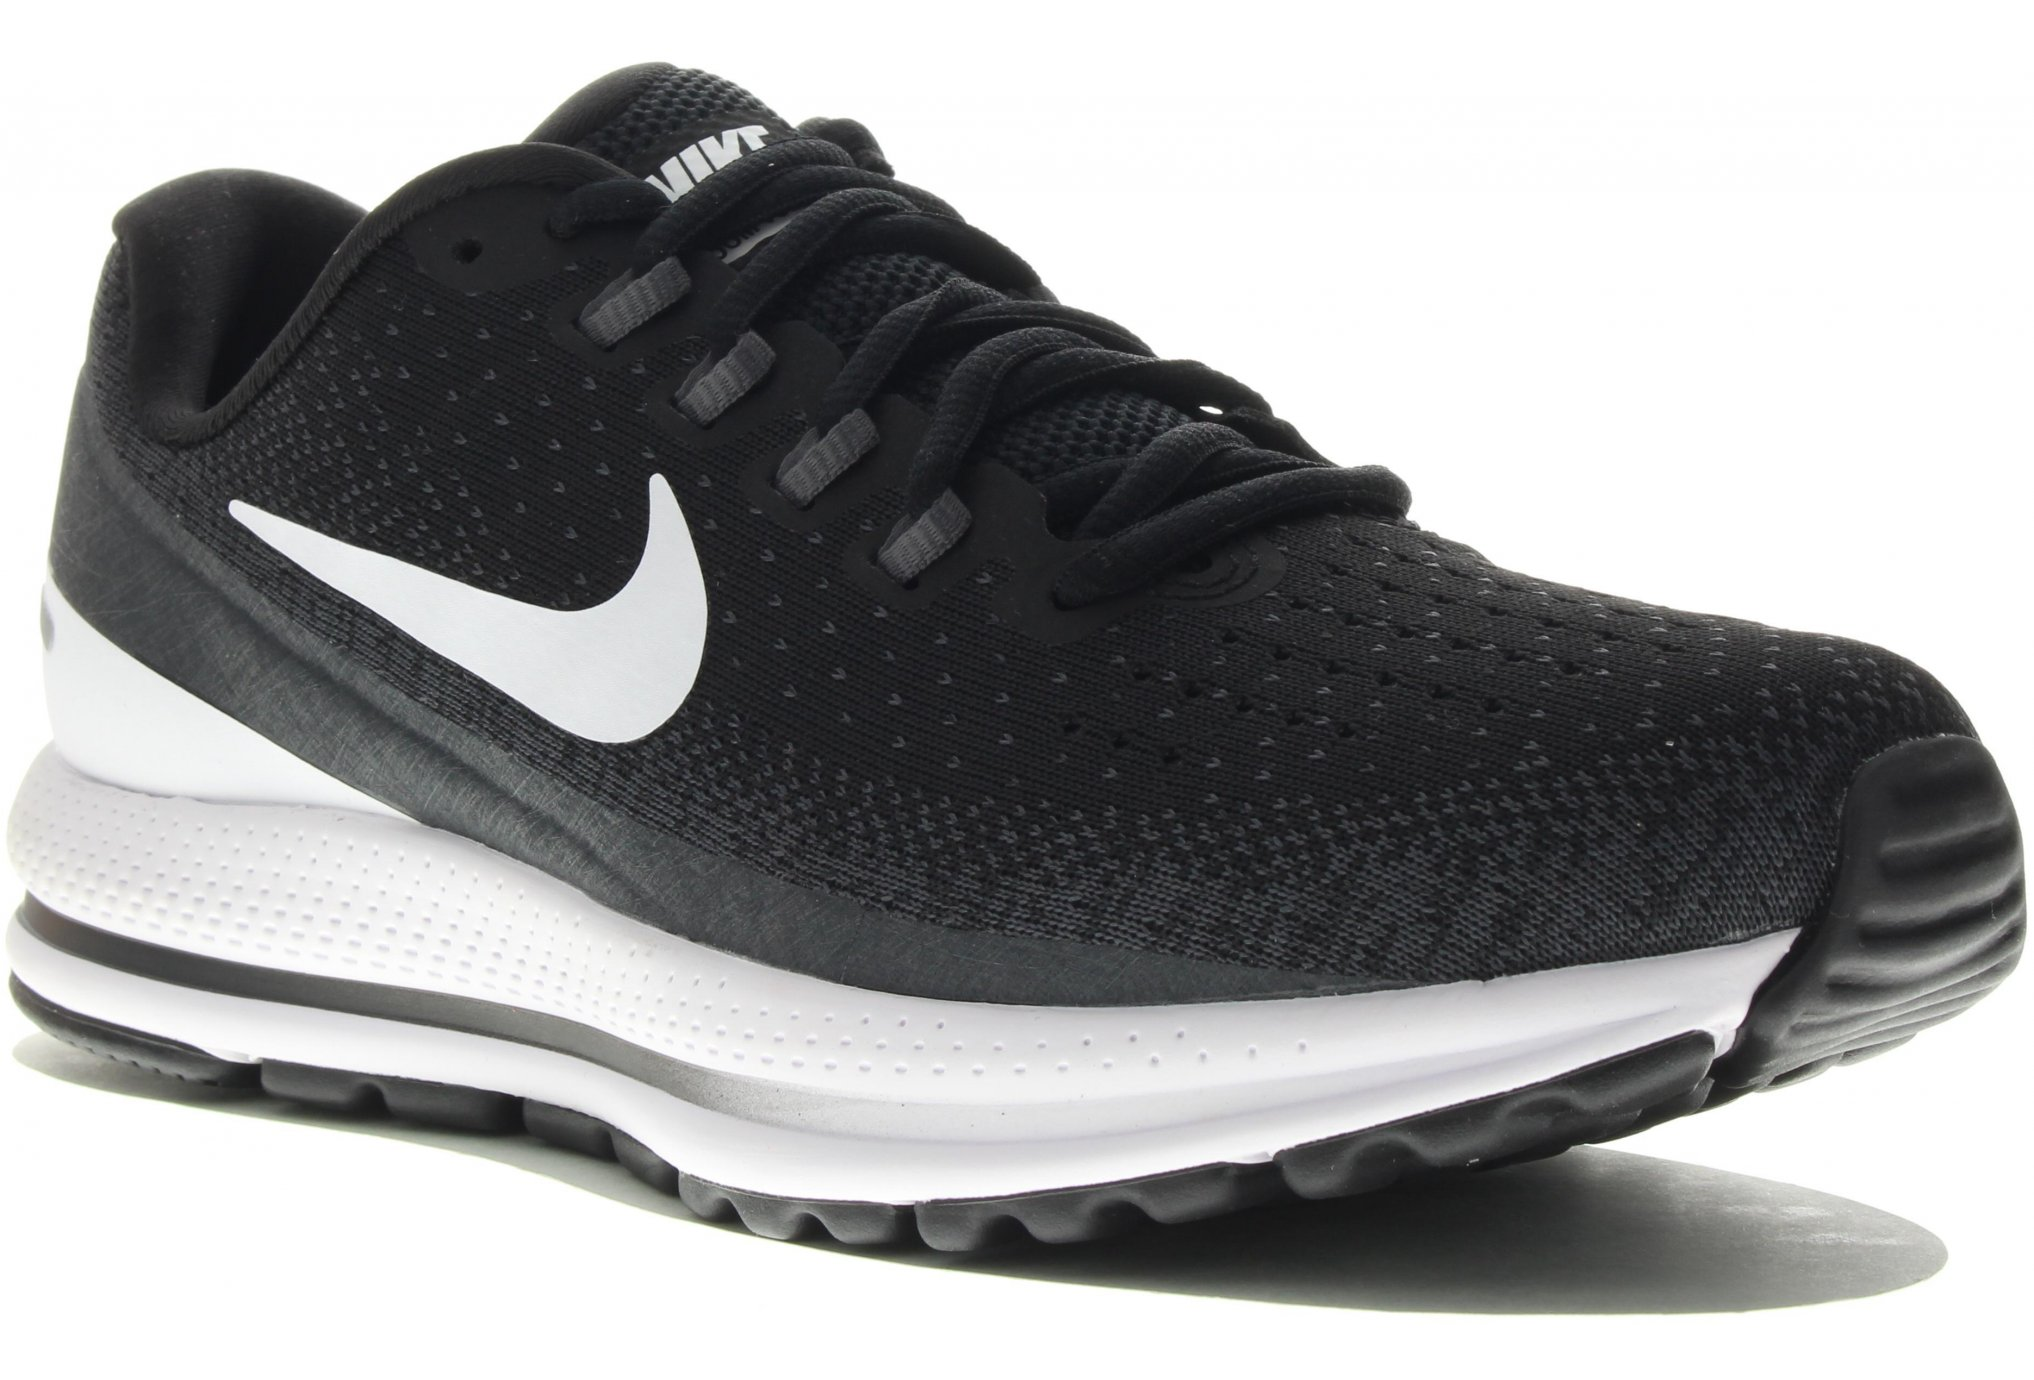 Nike Air Zoom Vomero 13 W Chaussures running femme